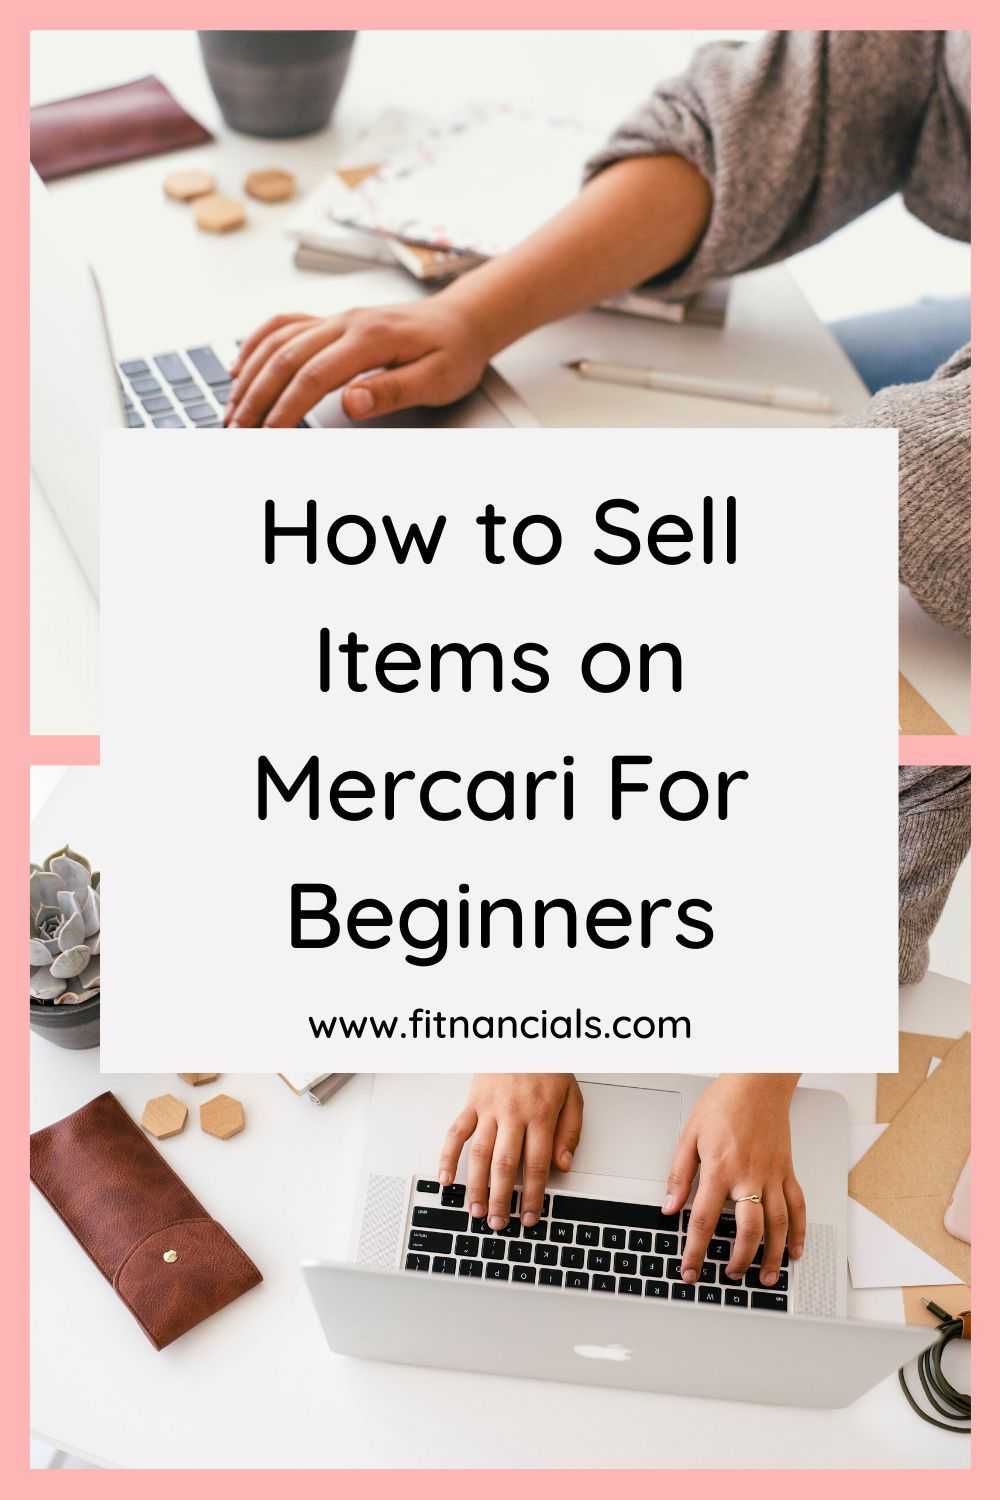 How To Sell Items On Mercari For Beginners In 2020 Things To Sell Sell Items Mercari